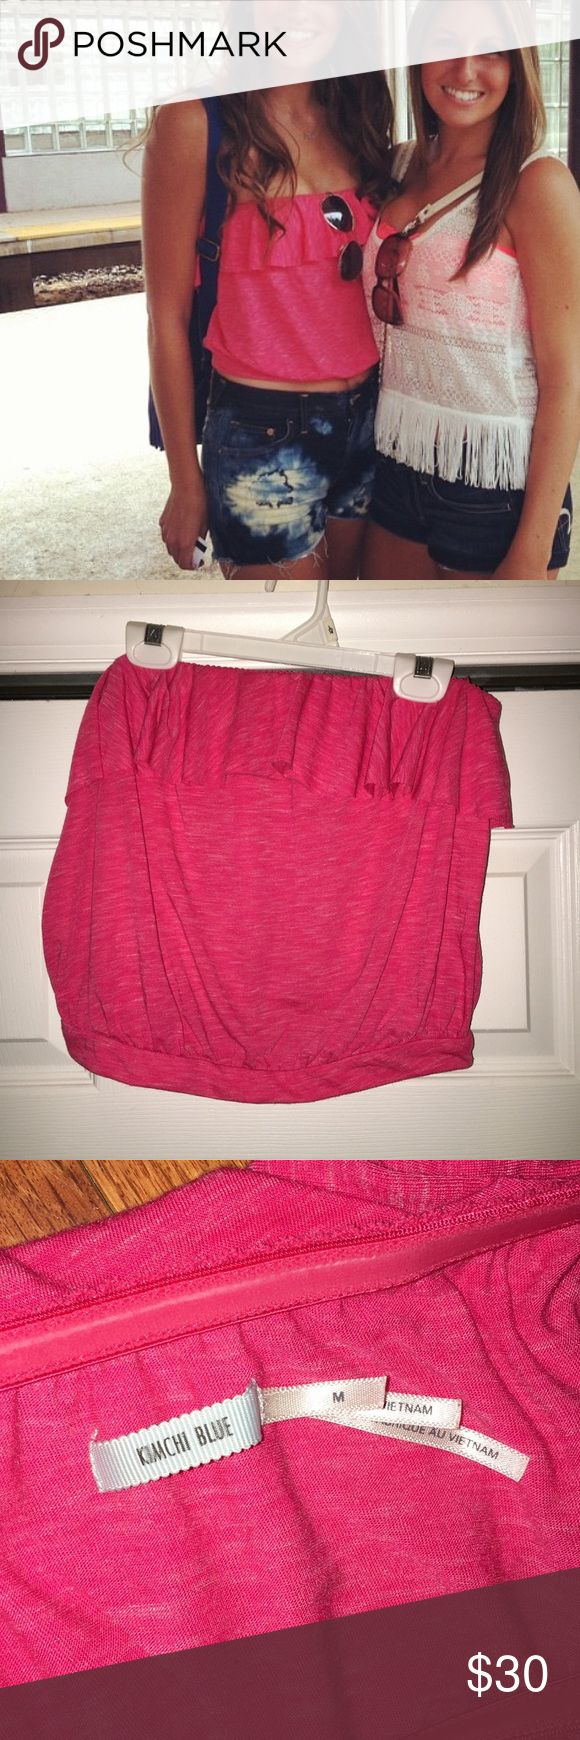 Pink Cropped Strapless Tank w/ Ruffle Super fun and comfy pink crop top.  Silicone adhesive lines the top to help it stay up, but doesn't pinch or bind in that unflattering underarm area!  Looks great with high wasted shorts or a skirt.  Size M but fits a small. Kimchi Blue Tops Crop Tops